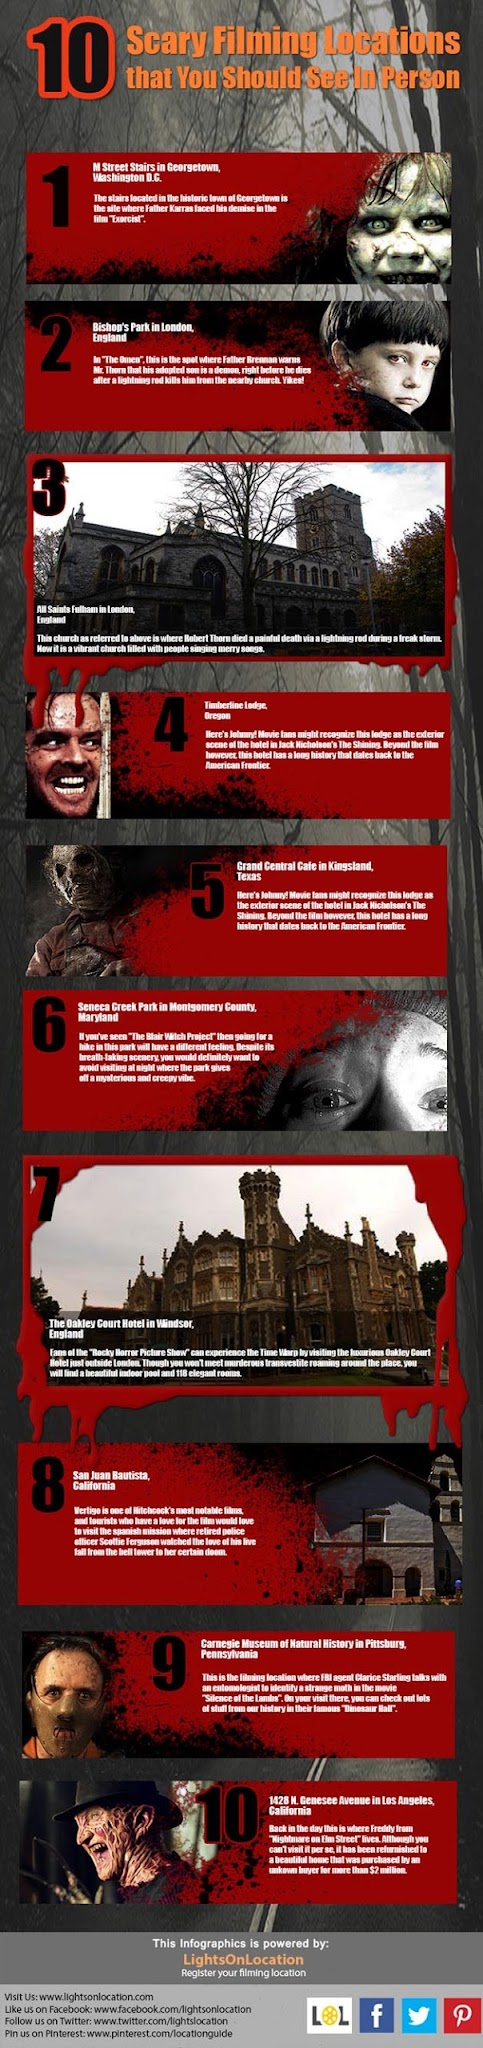 10 SCARY FILMING LOCATION THAT YOU SHOULD SEE IN PERSON